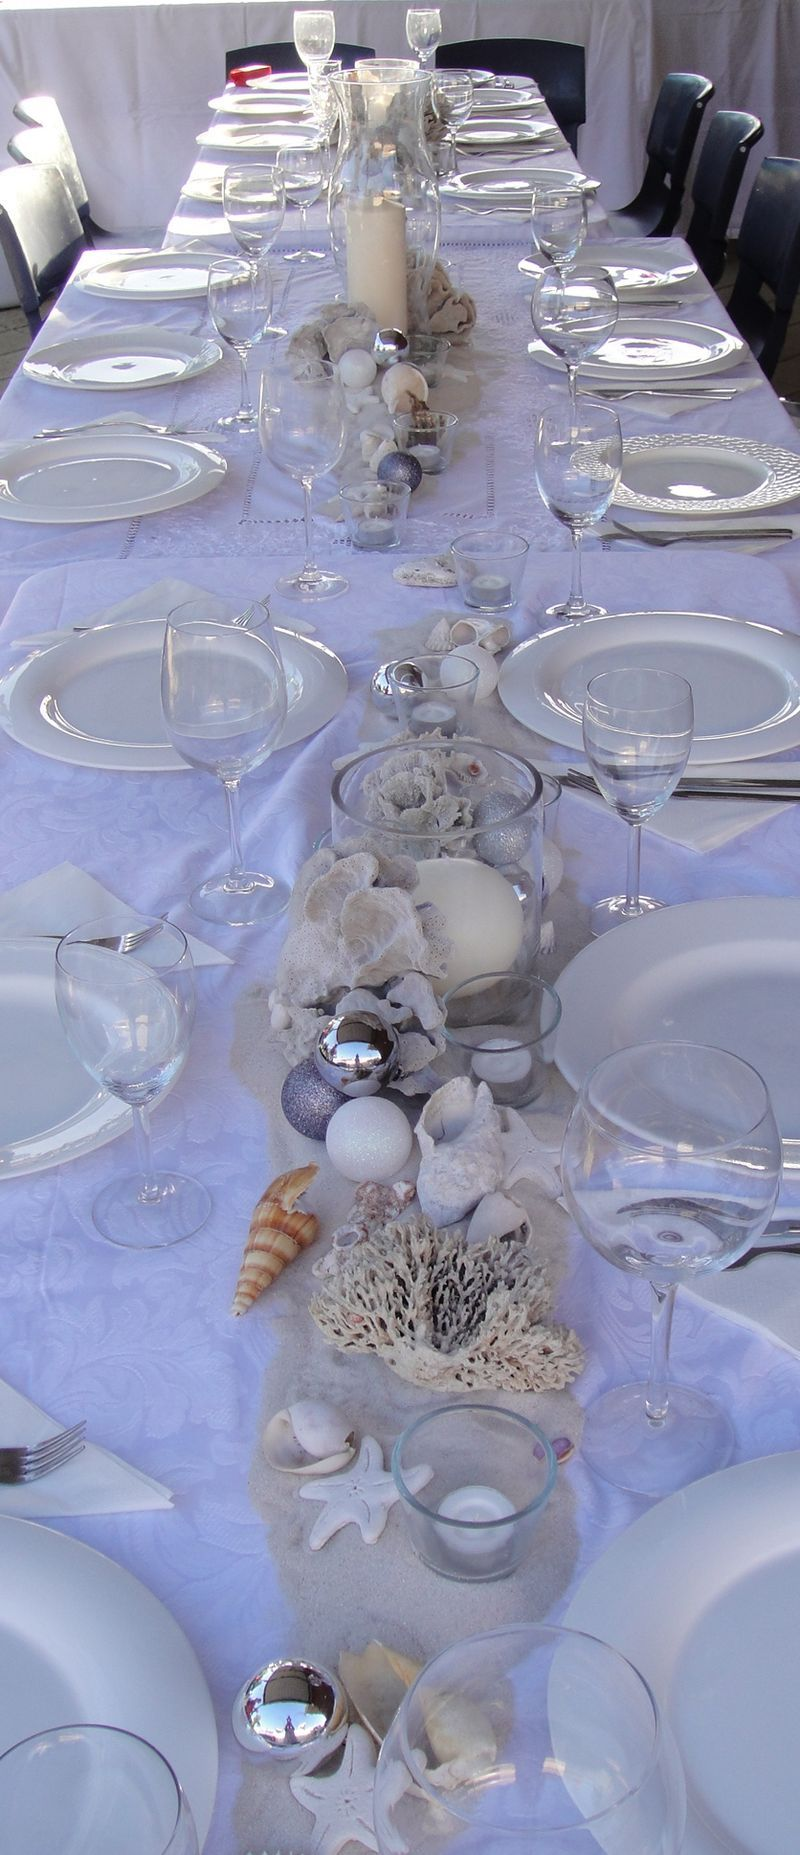 Happy Holidays With Images Beach Table Decorations Beach